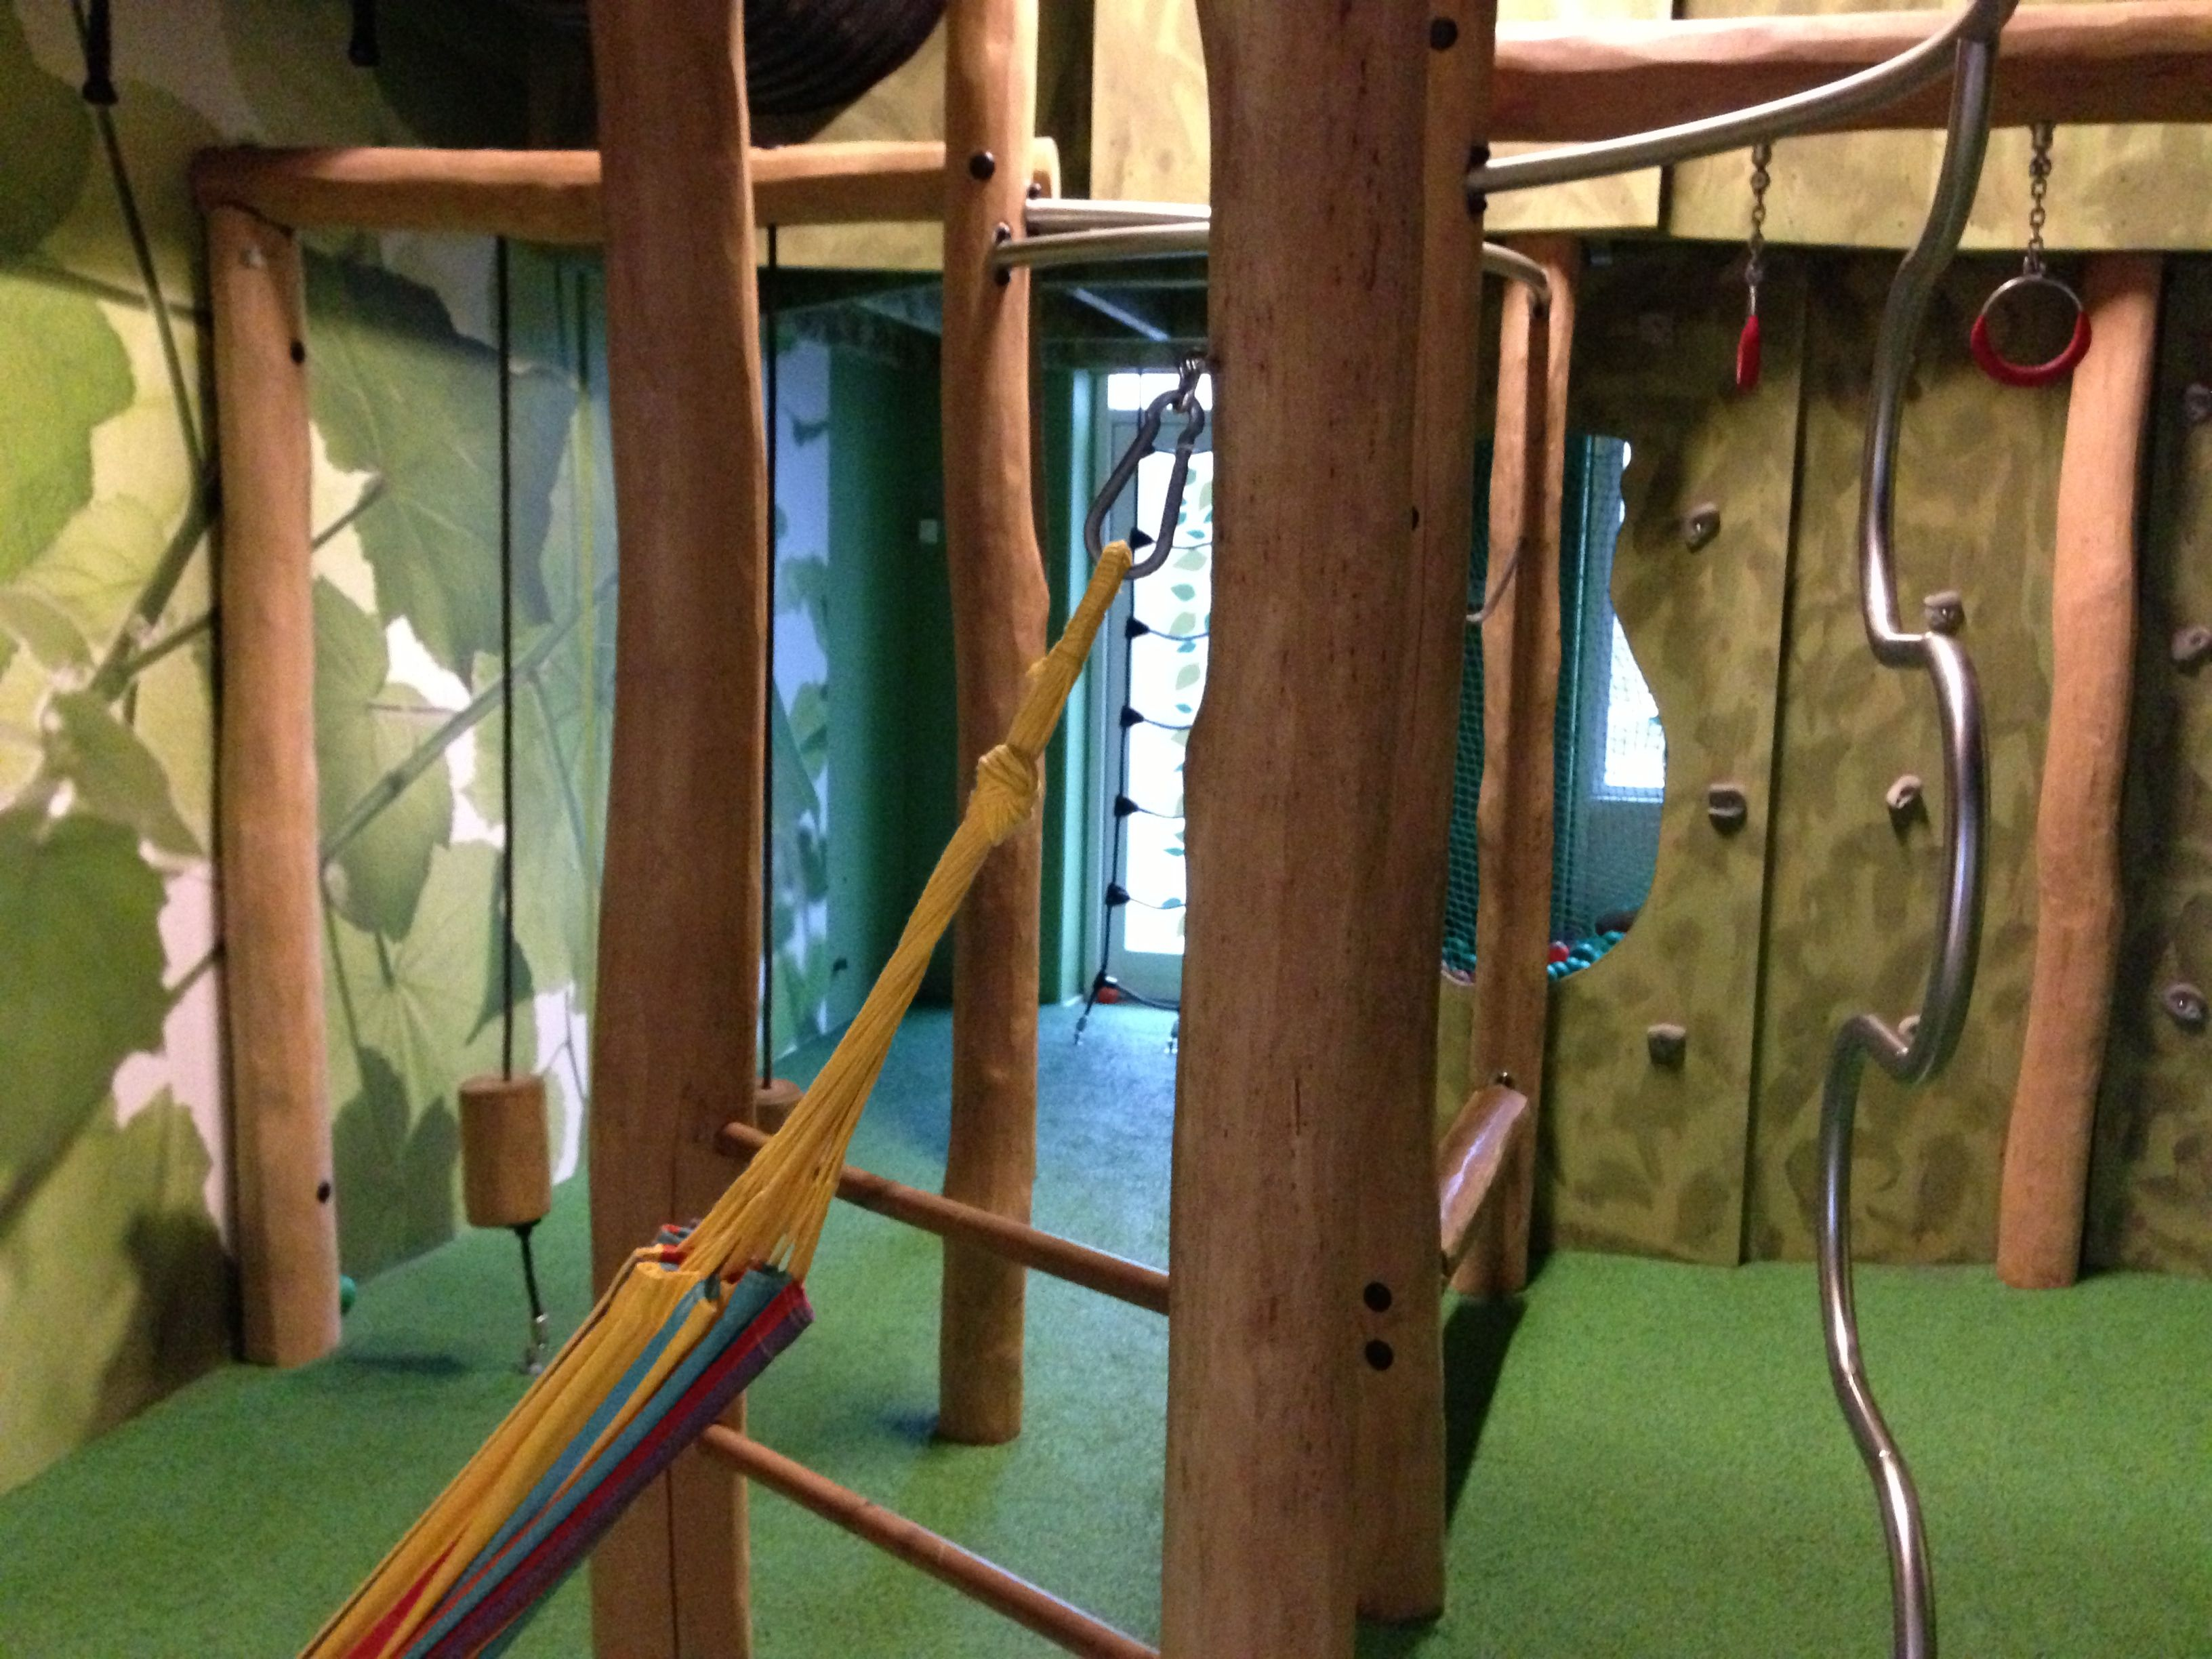 A great indoor - outdoor jungle room in a Silkeborg school. Playful, easy to do, quick to change